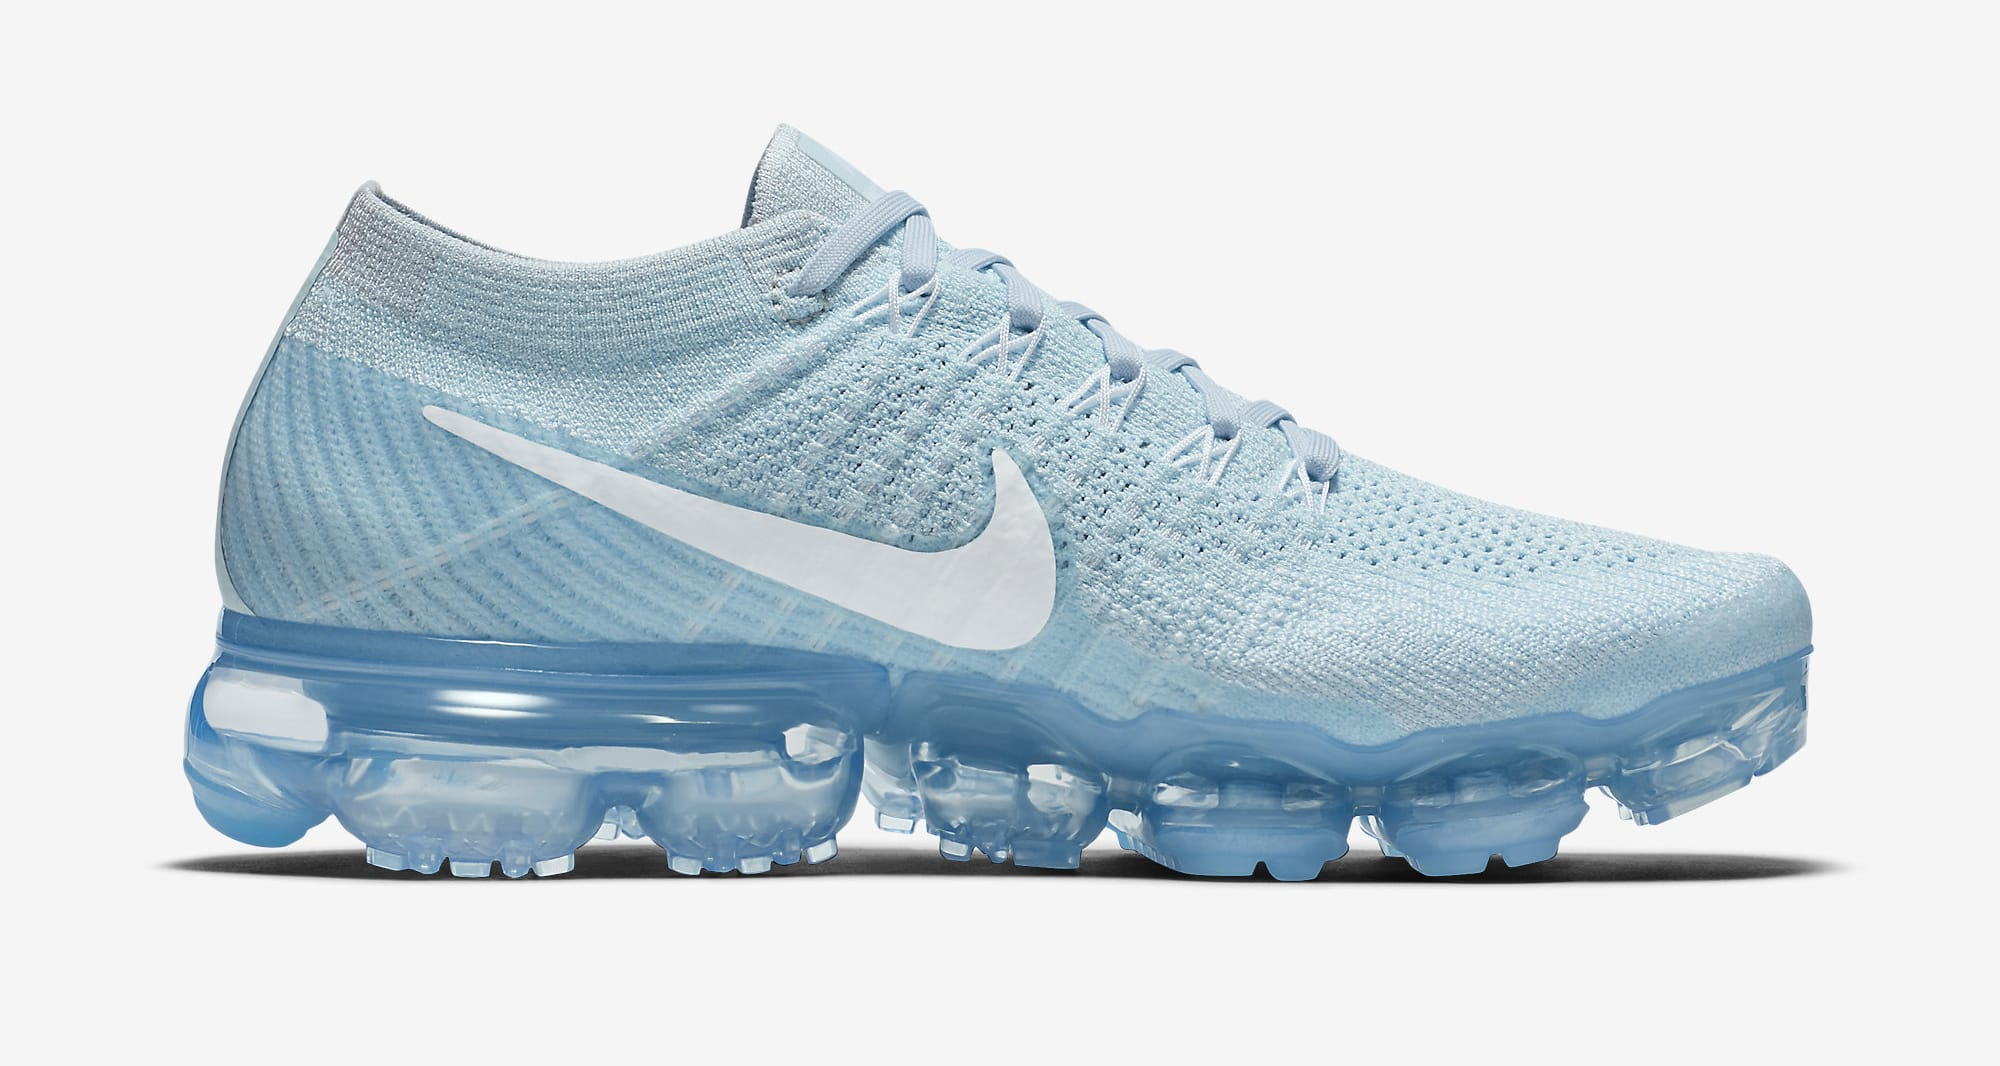 fe7f6451cb4 Buy Nike Cheap Air Vapormax Flyknit Running Shoes Sale Online 2018